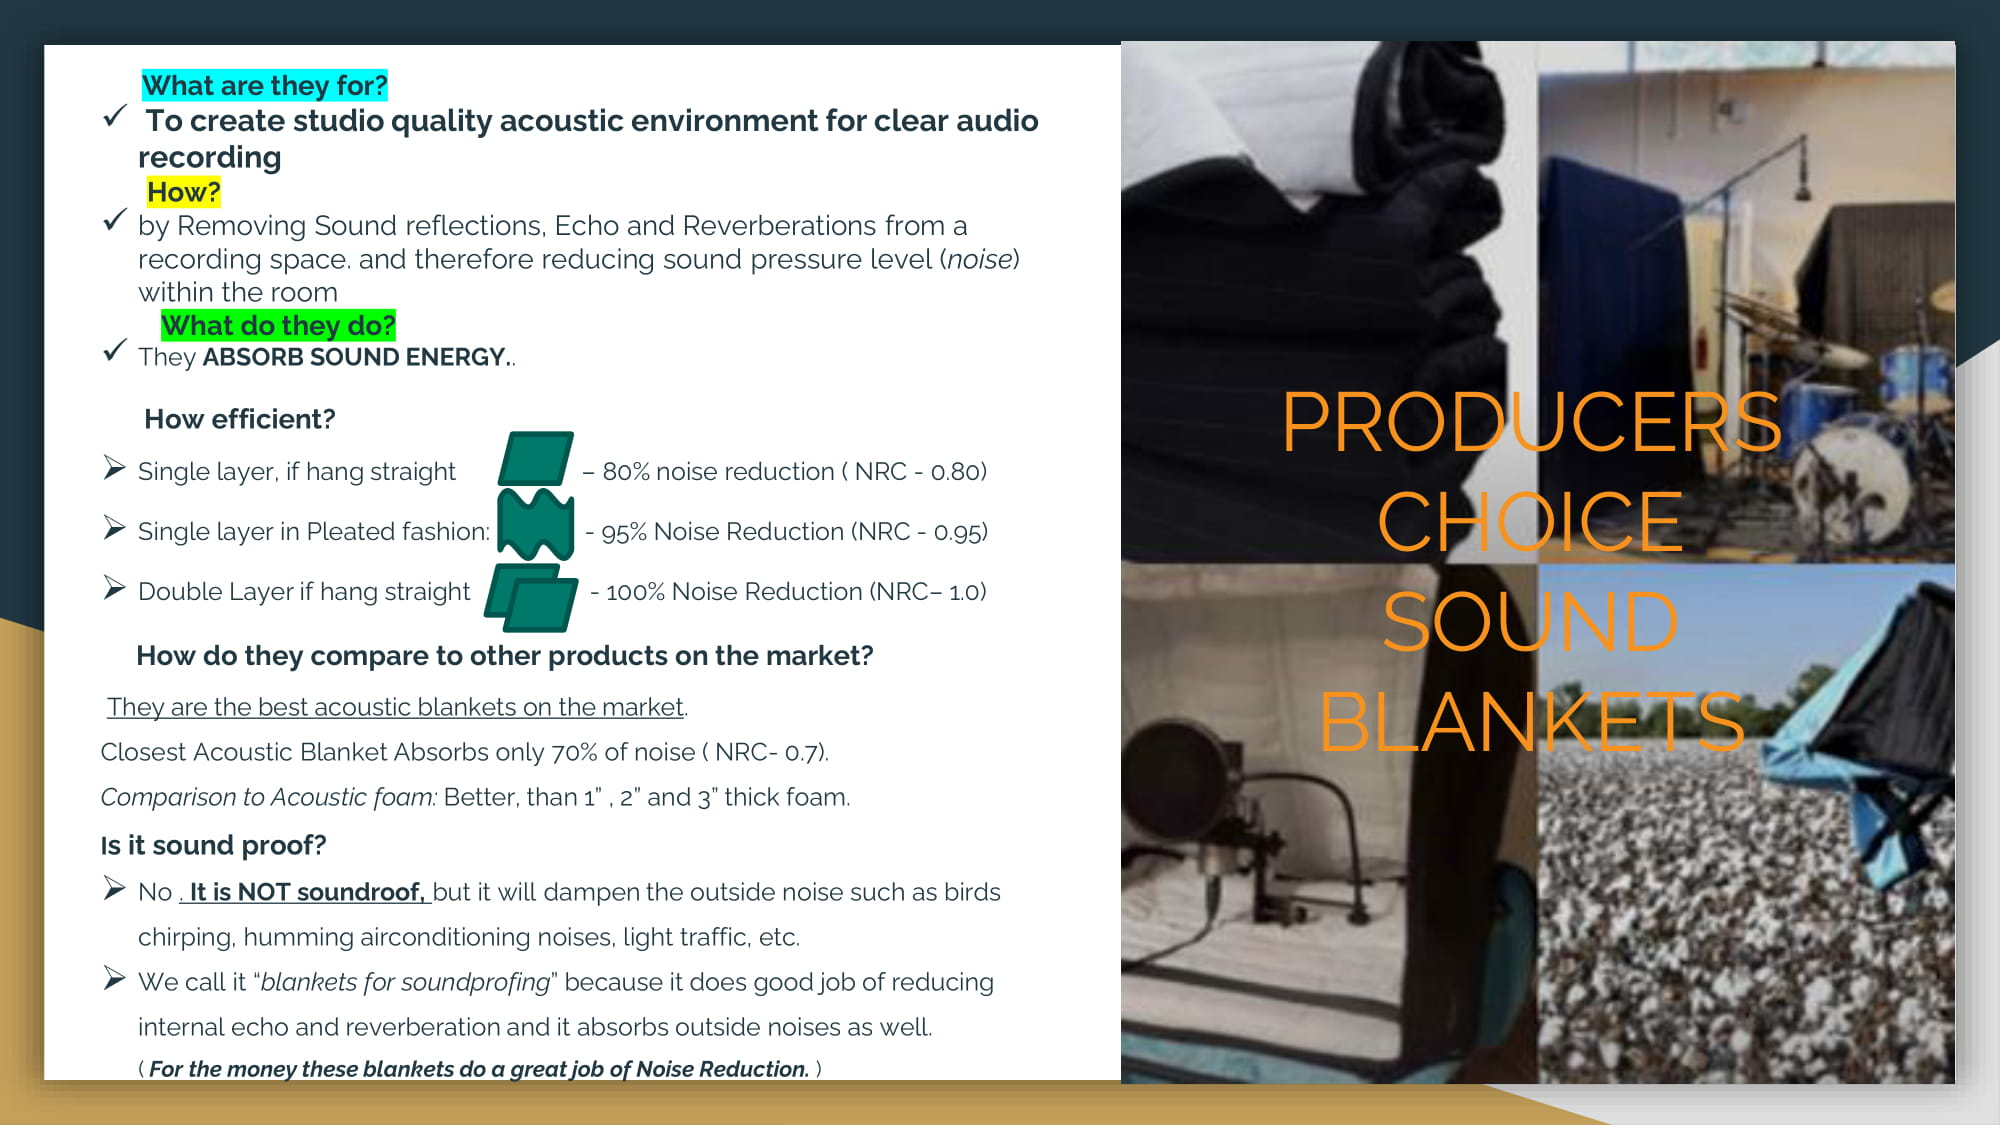 PRODUCERS CHOICE SOUND BLANKETS